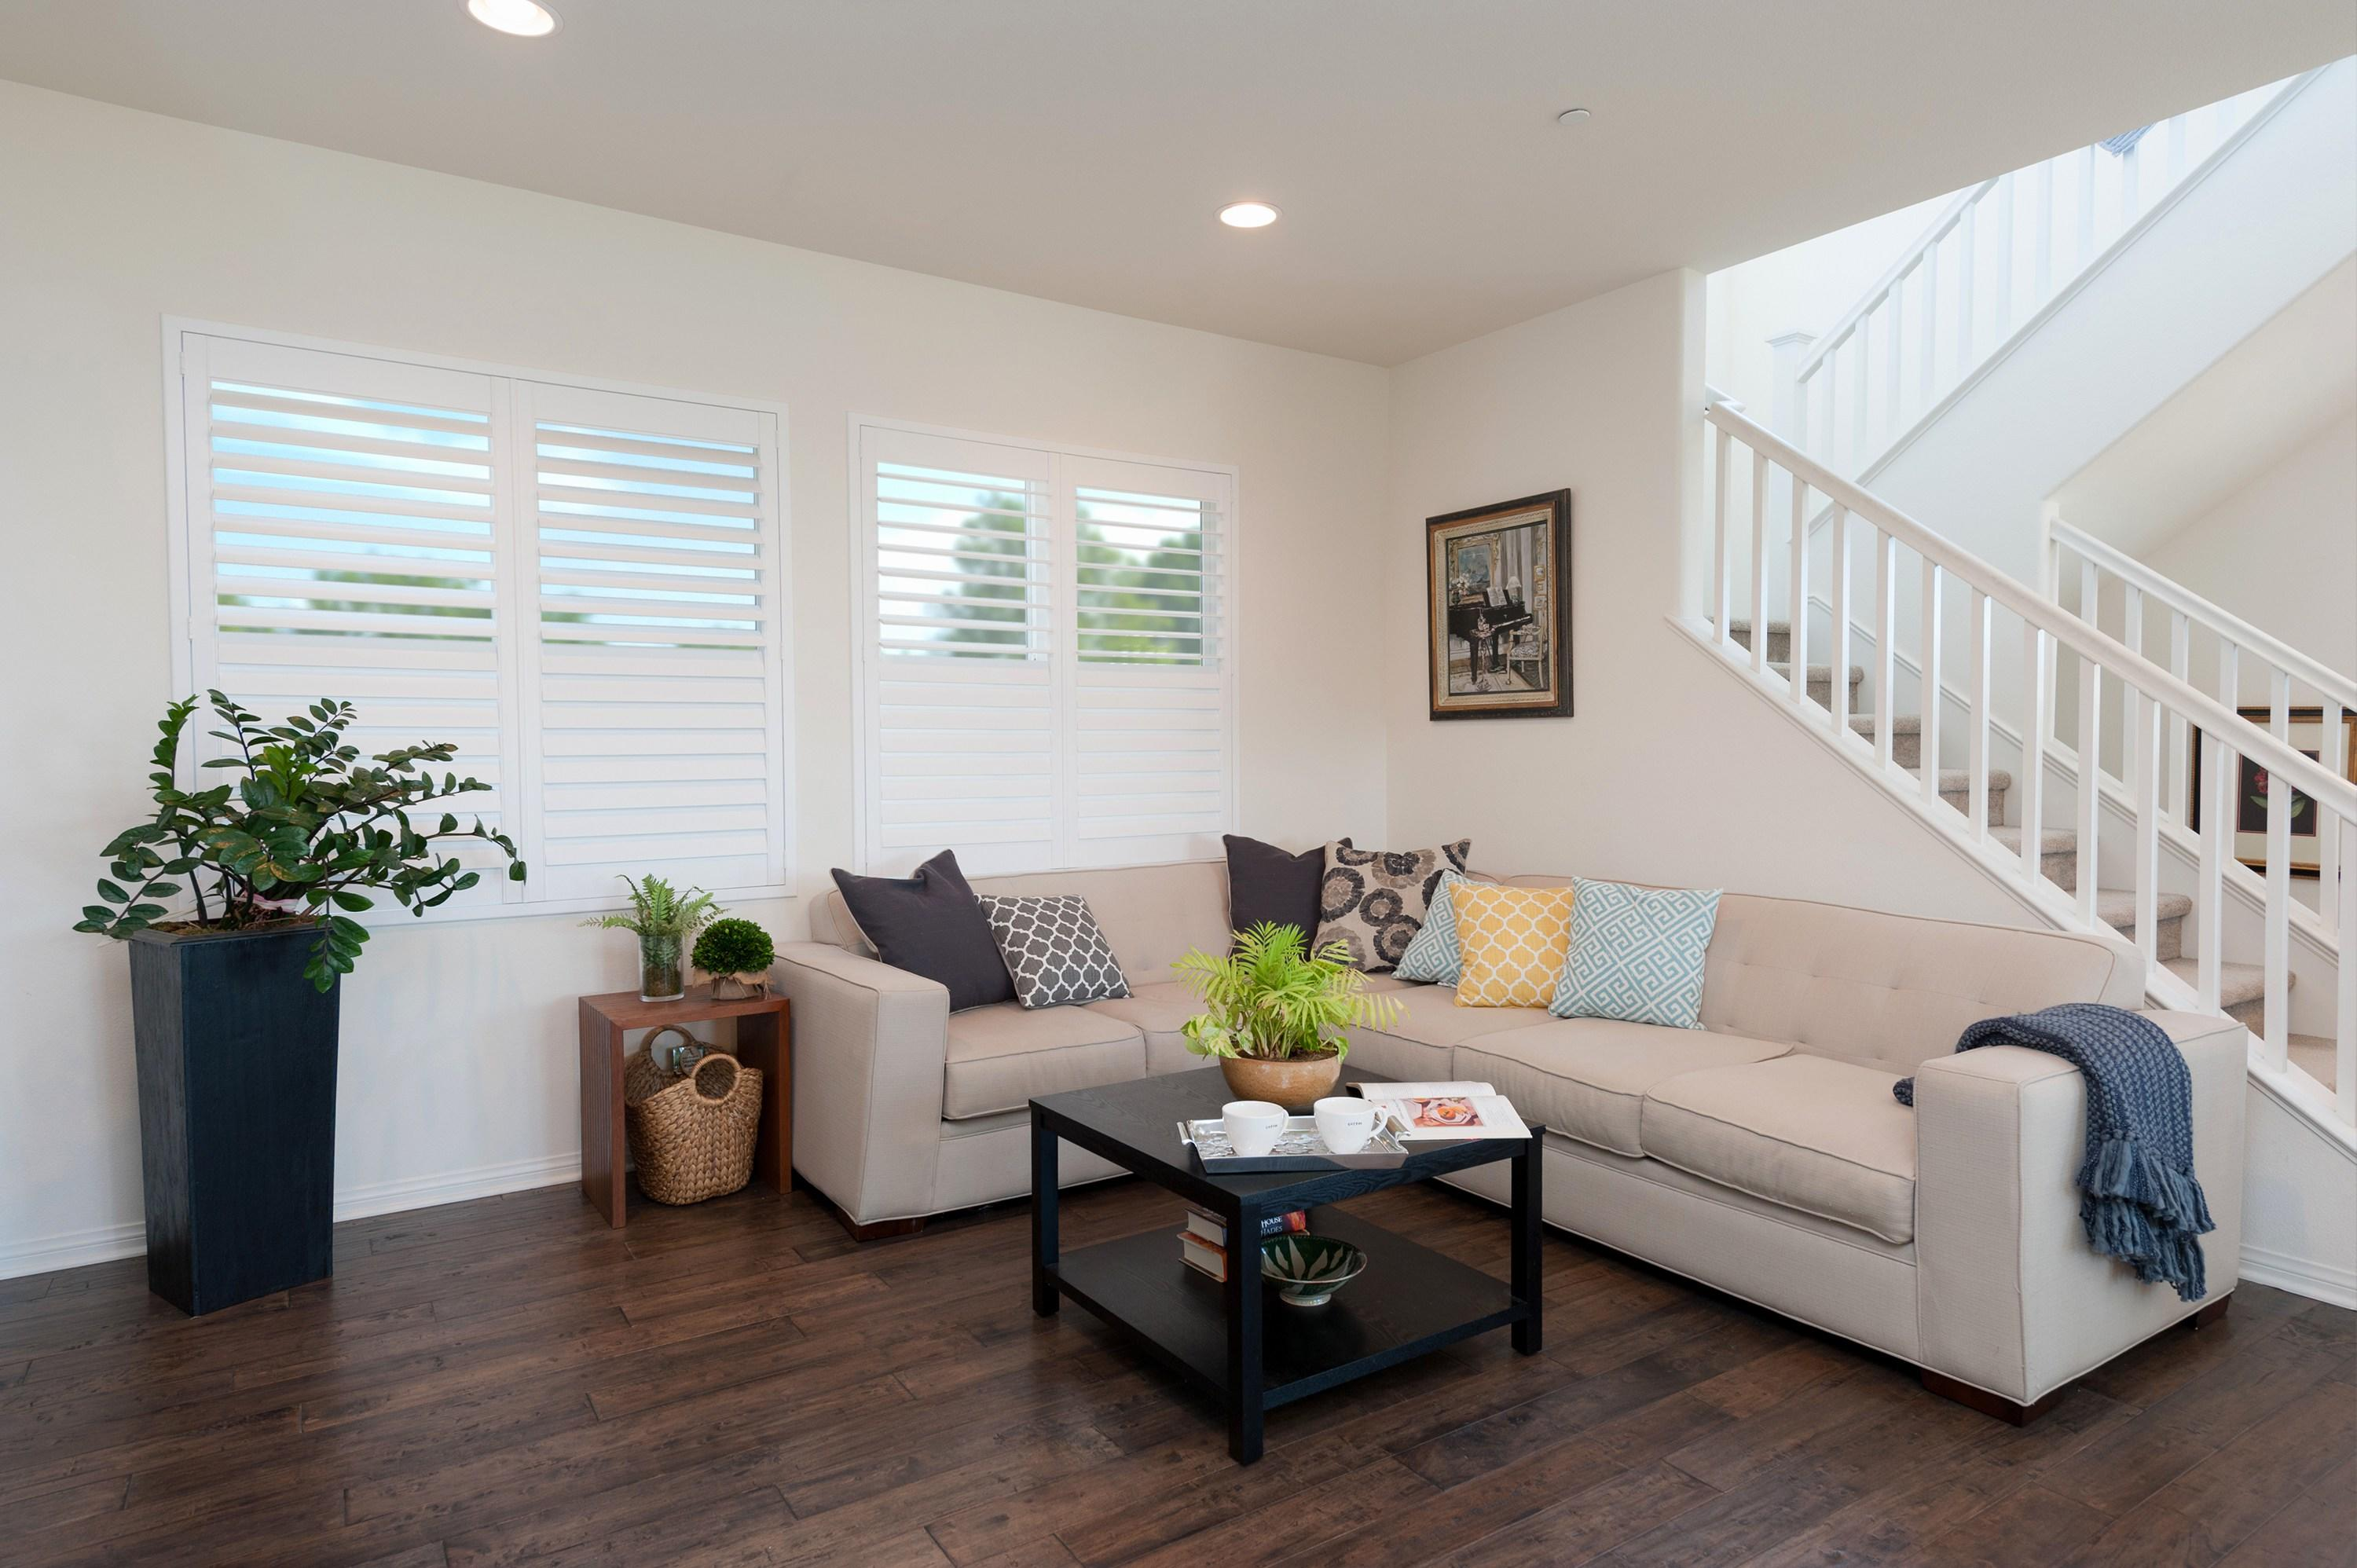 Affordable Blinds and Shutters image 1